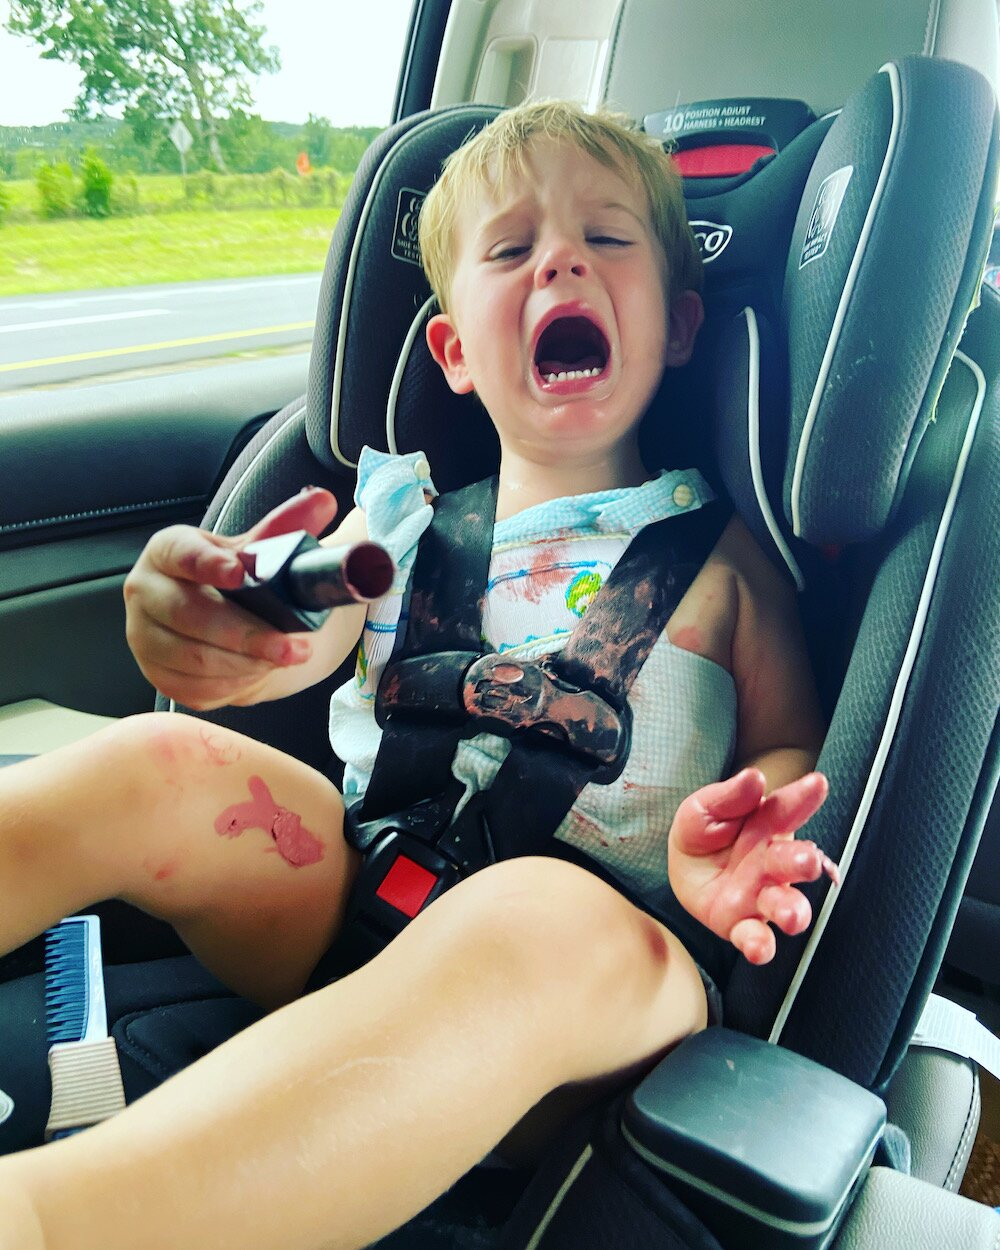 Covid 19 Burnout Is Getting The Best Of Us Parents Here Are 4 Ways To Cope Parents